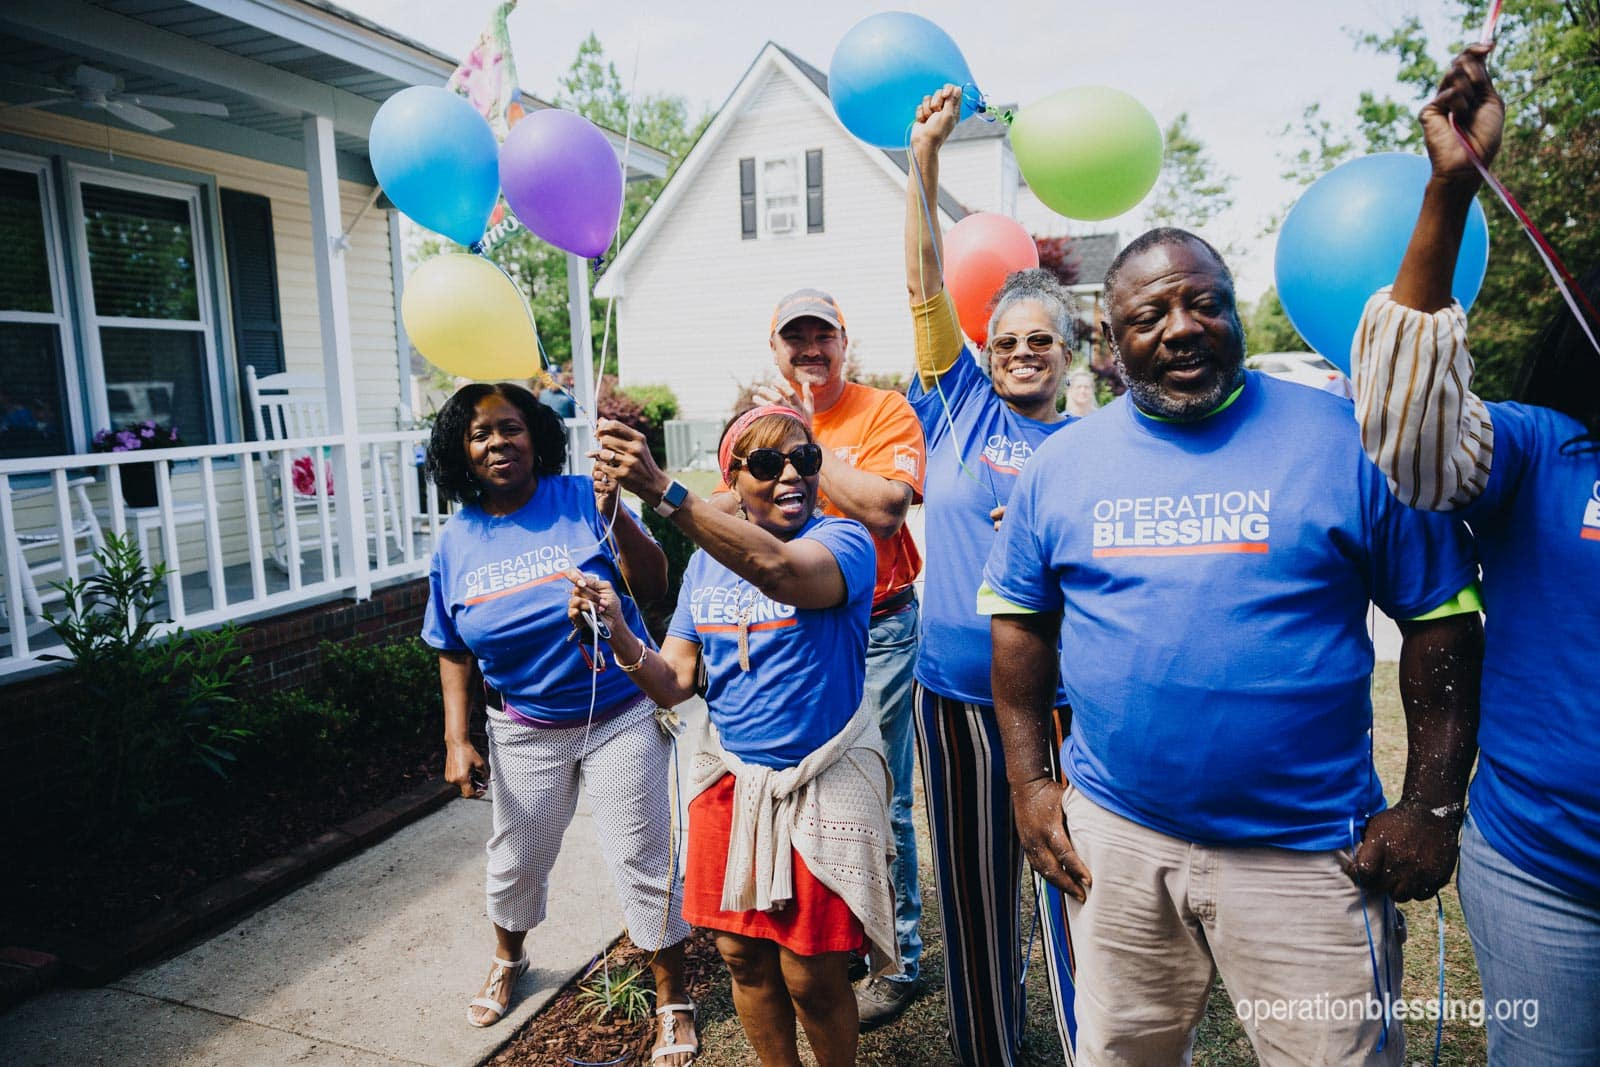 Operation Blessing volunteers greet the family and celebrate their triumph from tragedy.